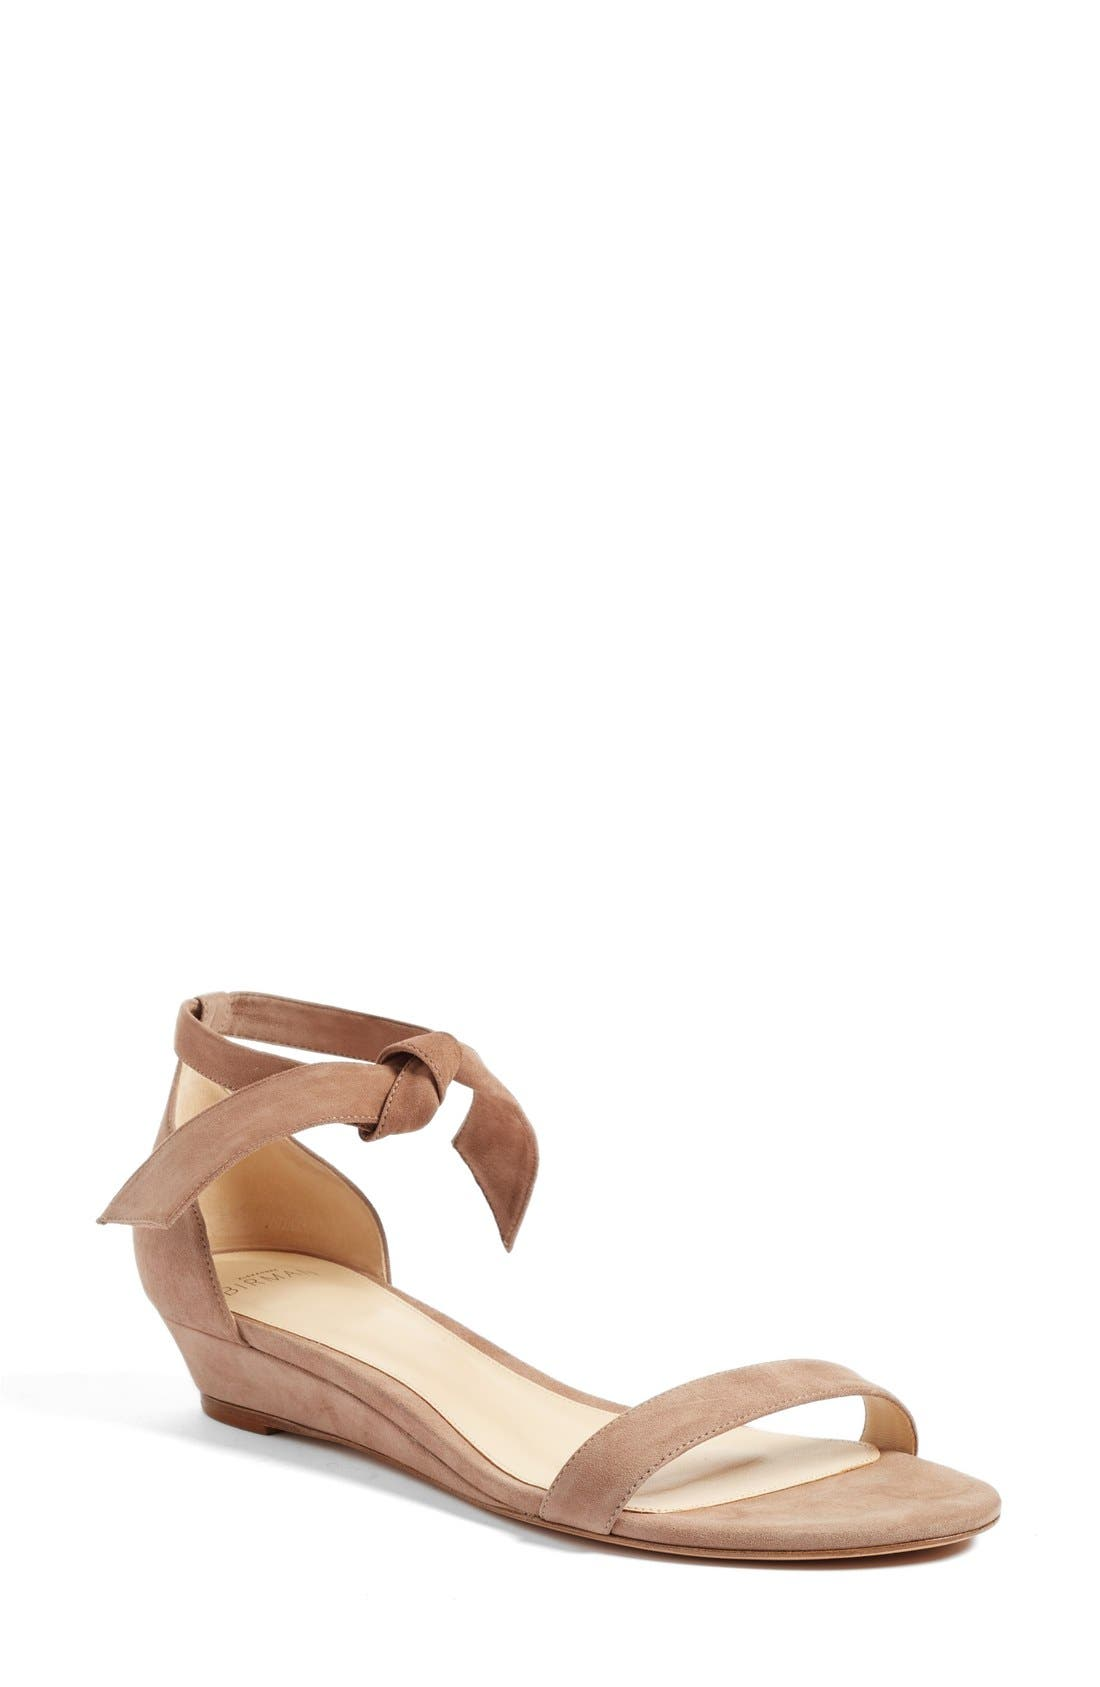 Atena Tie Strap Wedge Sandal,                         Main,                         color,